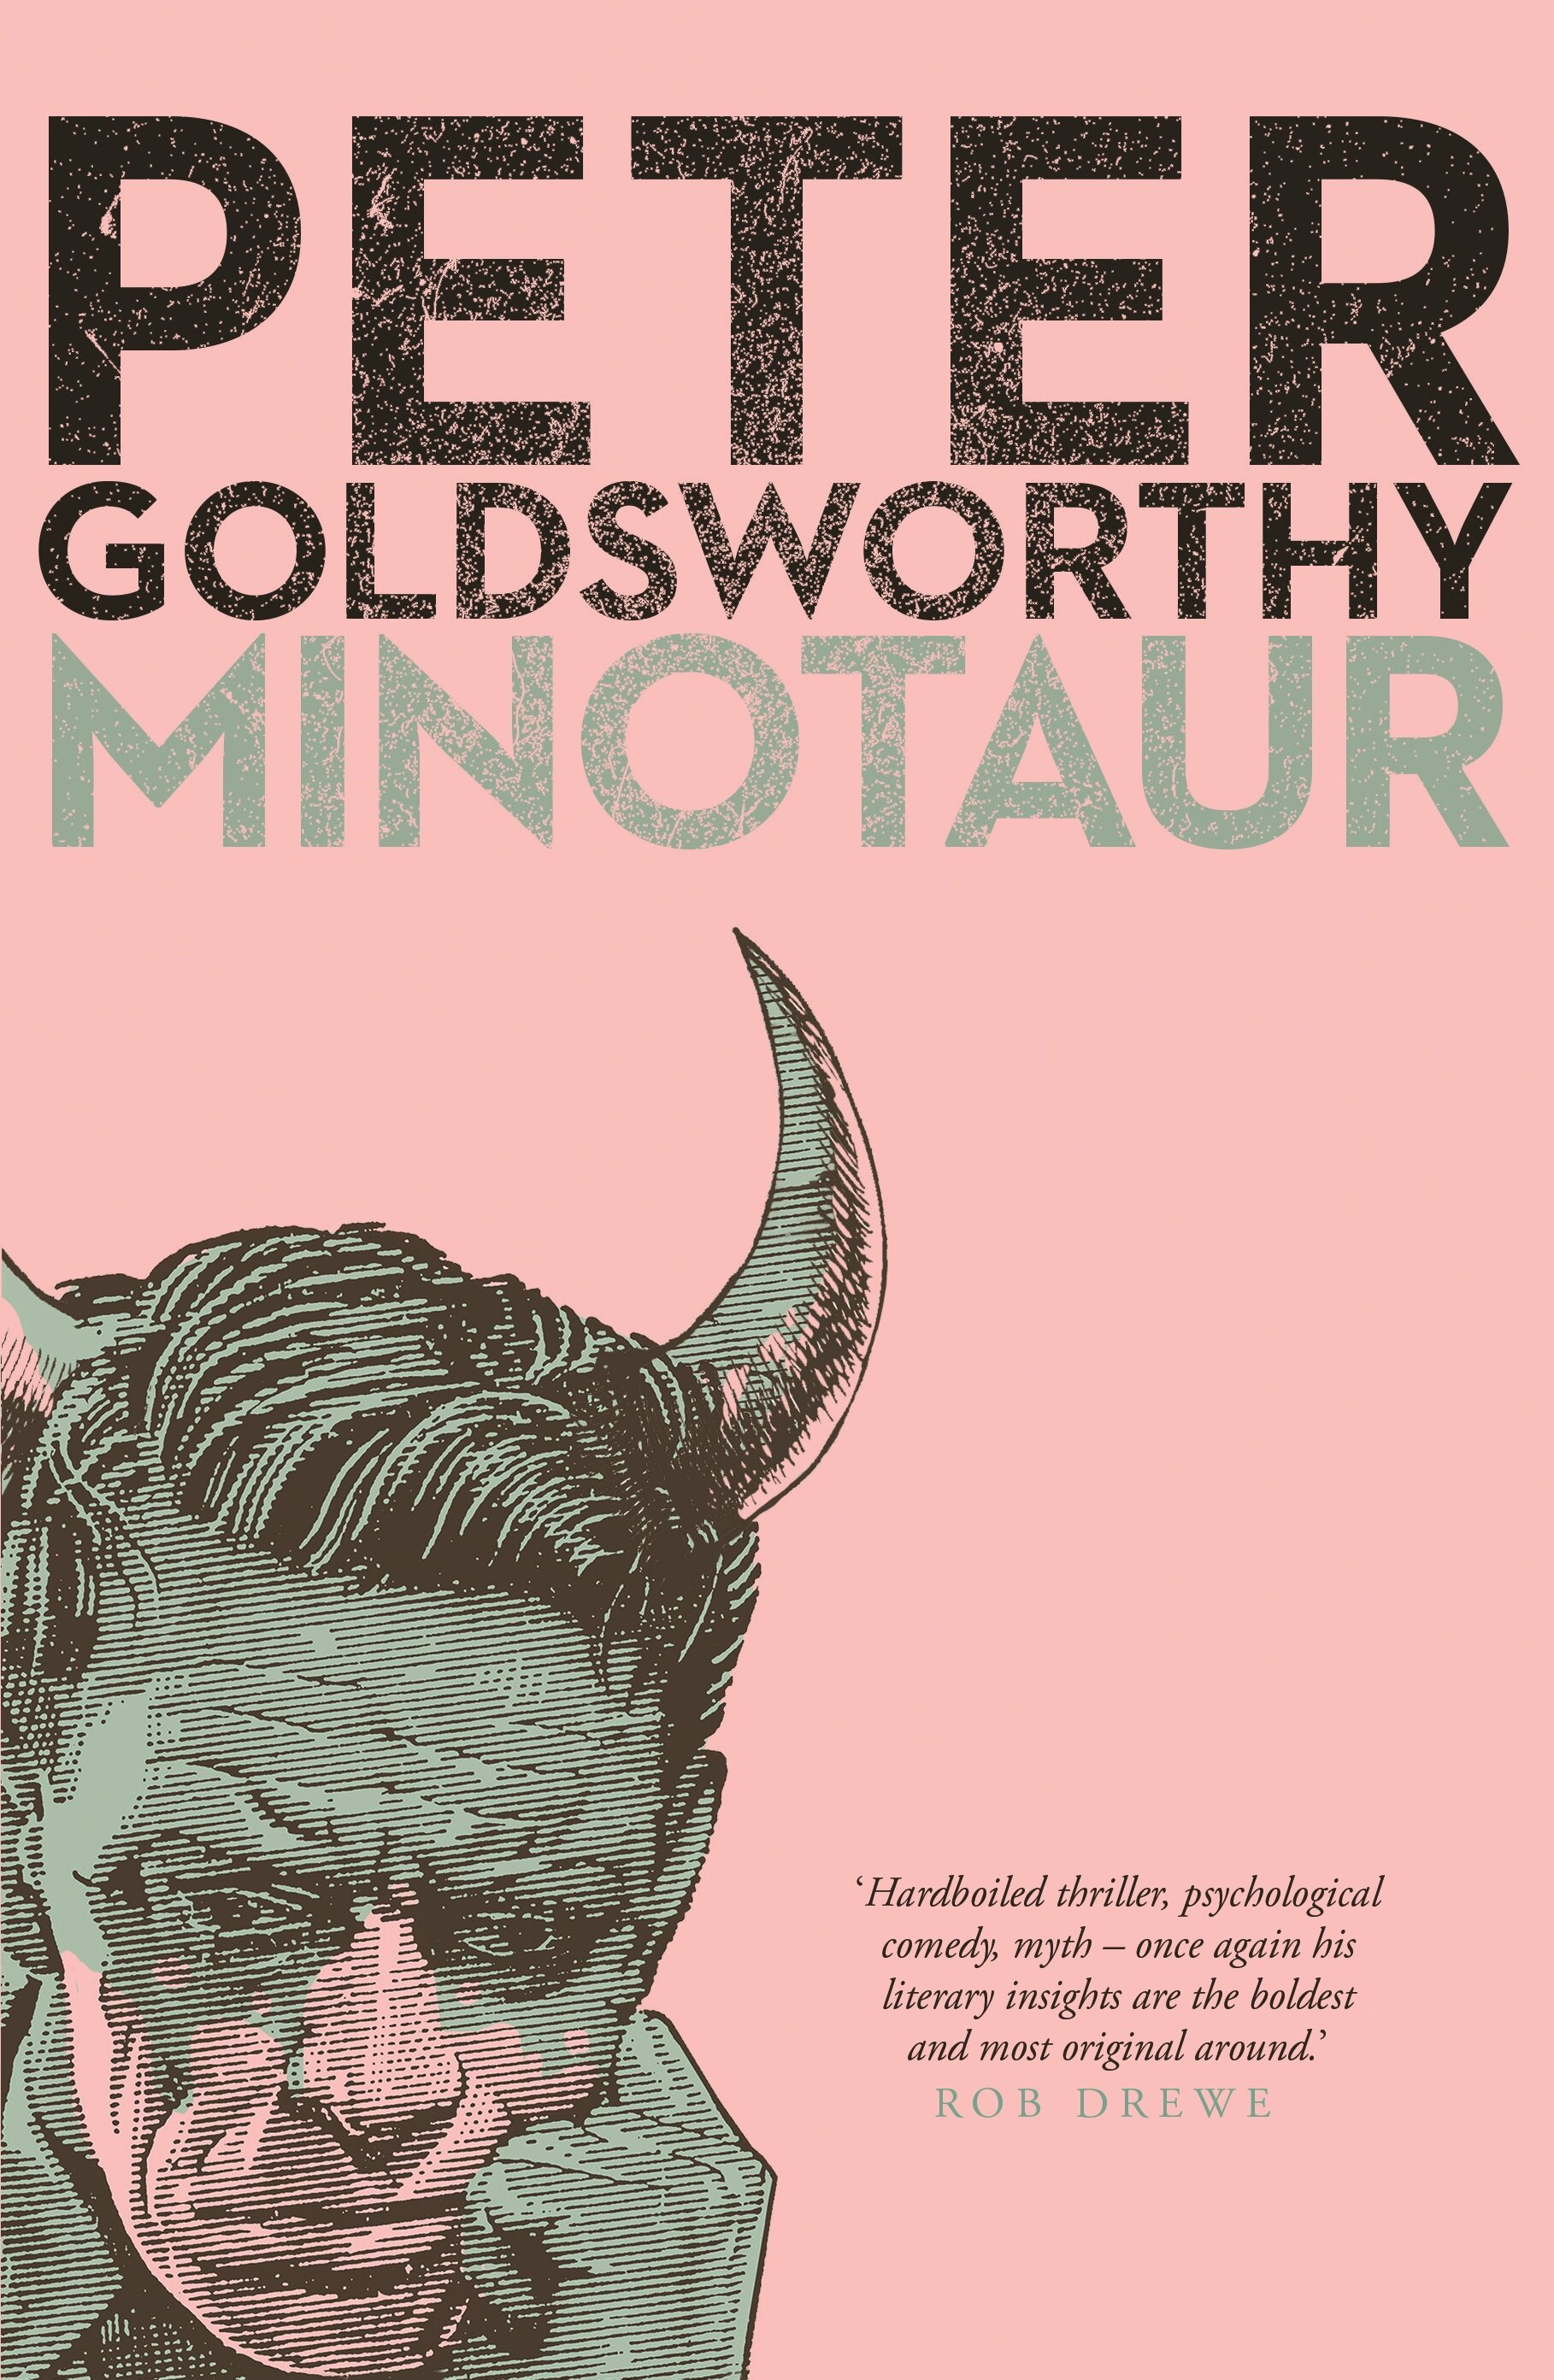 New Release: Minotaur - Peter Goldsworthy's new novel features a blind detective determined to deliver justice to the man who shot him, even though his failed assassin has broken out of jail and is equally determined to finish the job. Cleverly structured around the five senses, and with the action confined to one week, it's pacey and taut, with the cat-and-mouse tension leavened by lighter interludes.Goldsworthy is interested in all that his protagonist cannot see, as he is forced to meet evil, acting on a trust in his senses, and the ineluctable mystery that is memory.More information: https://www.penguin.com.au/books/minotaur-9780143795698